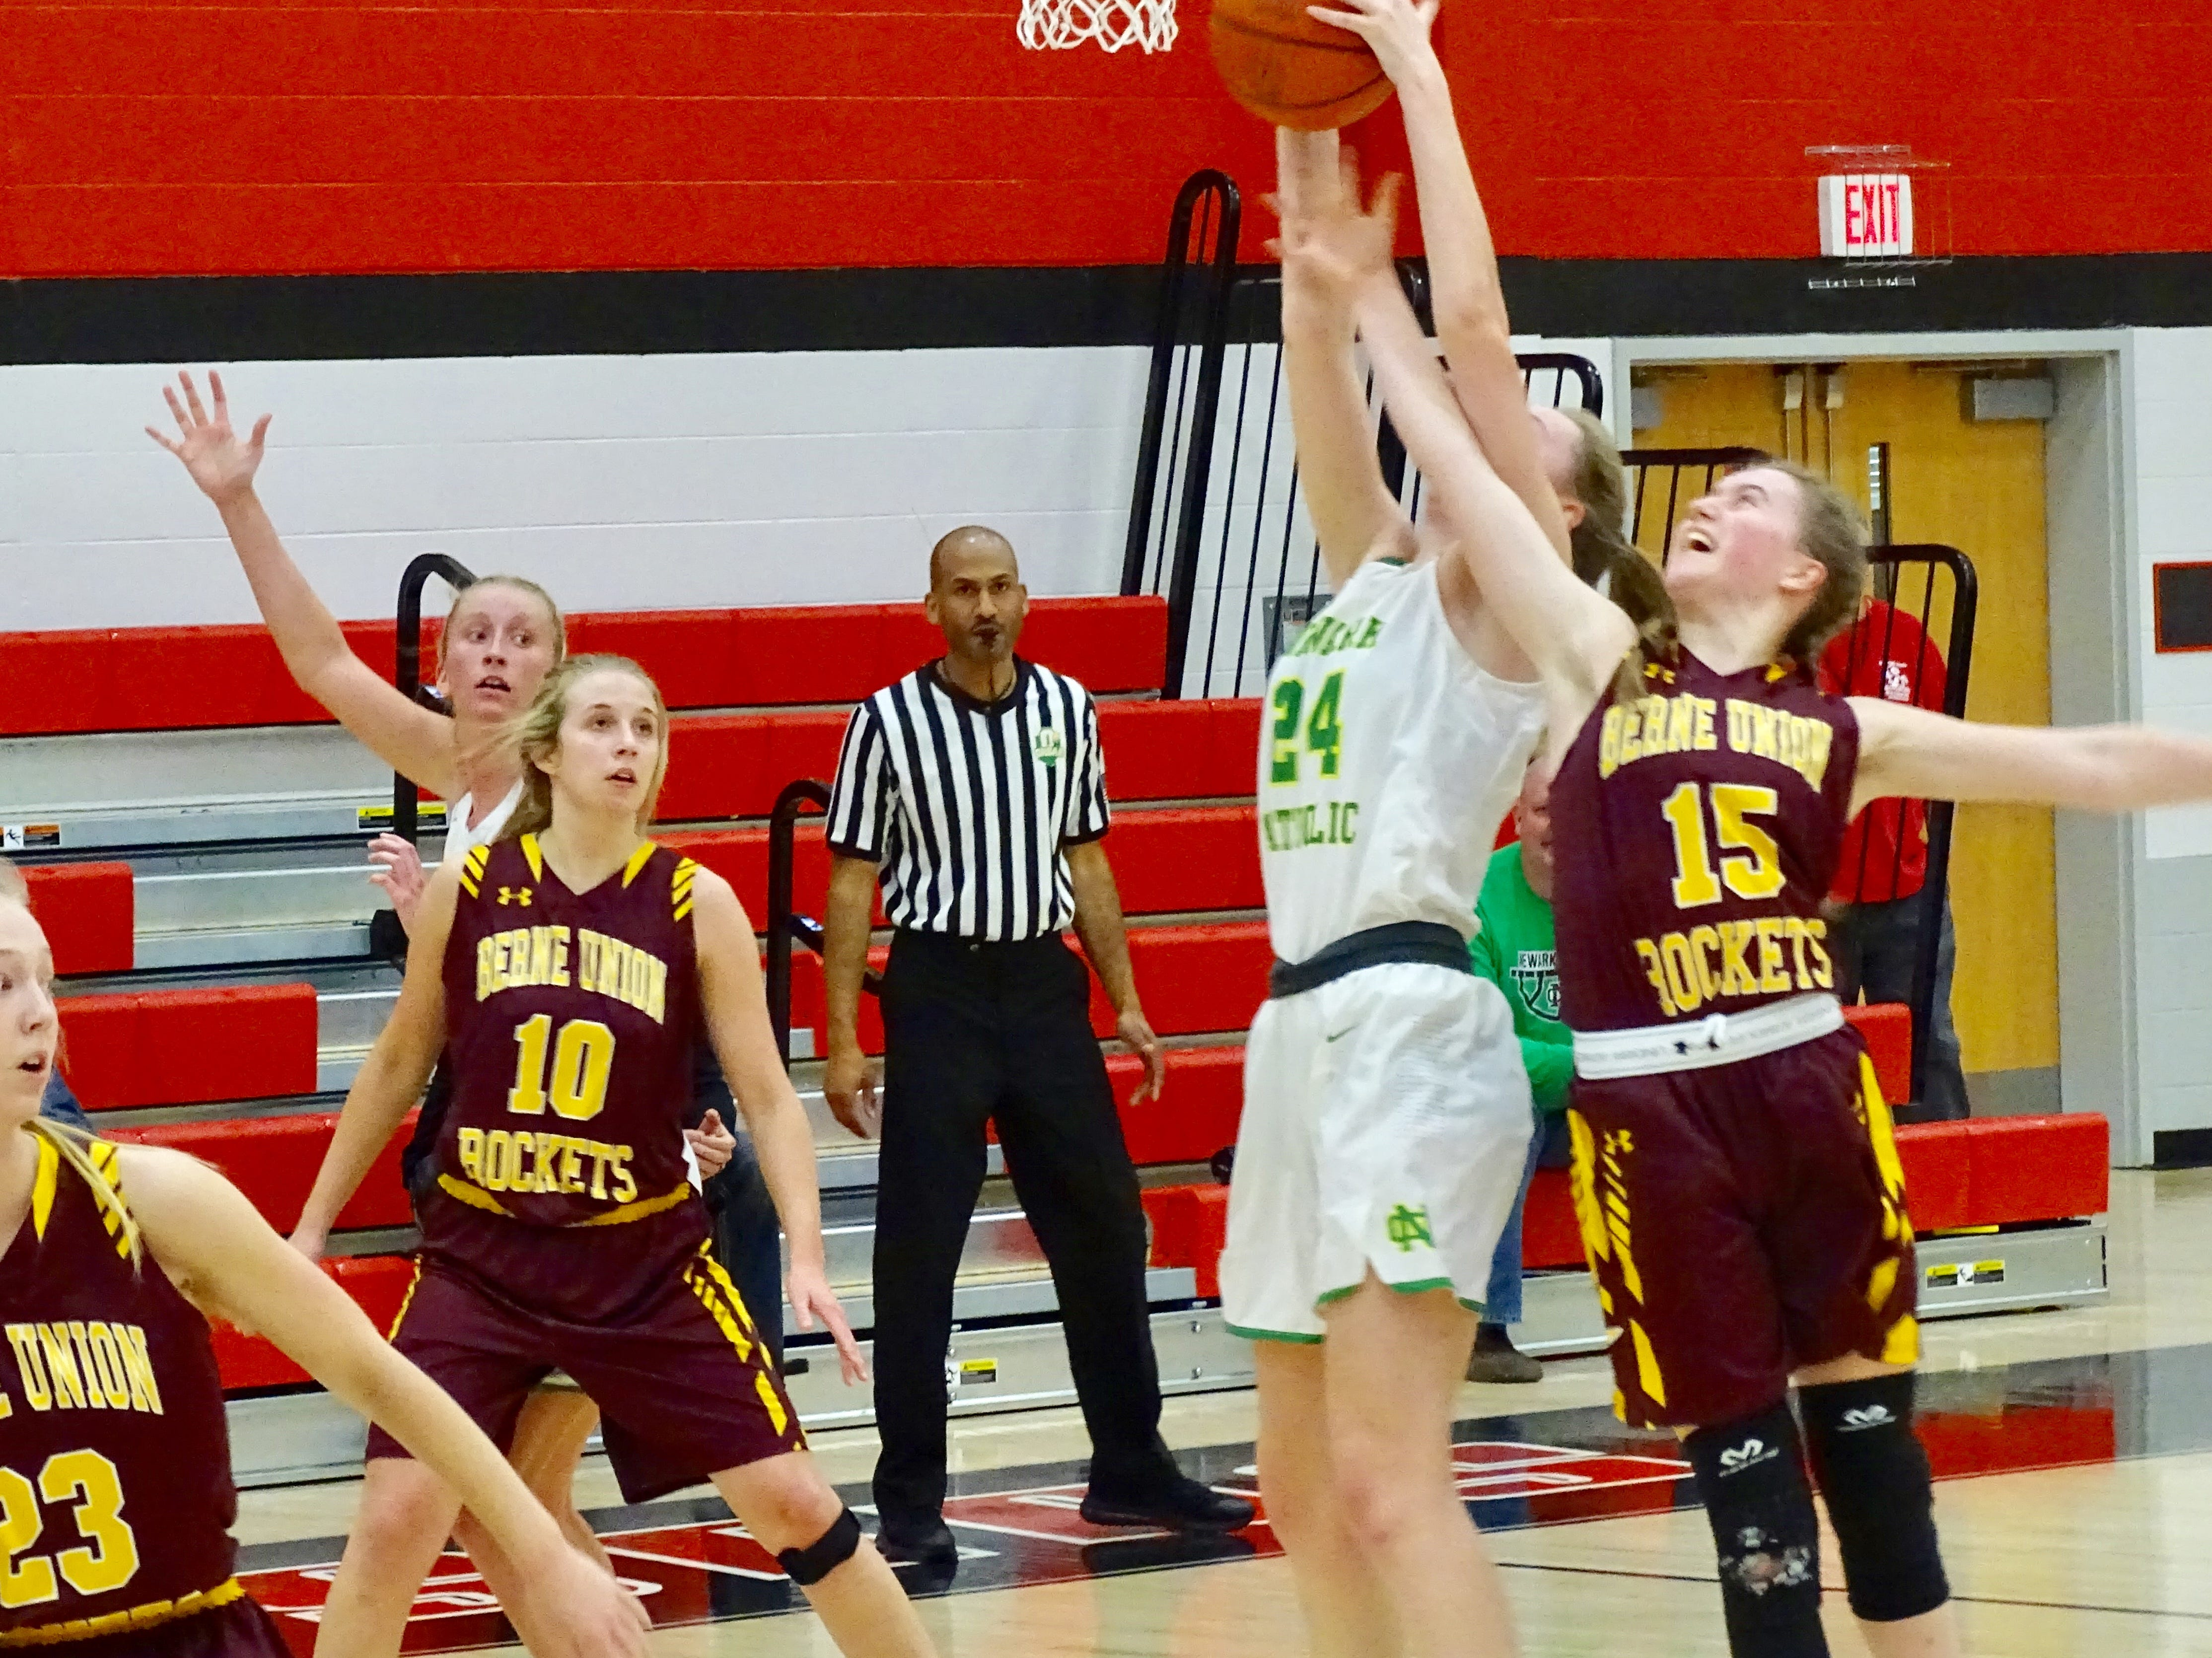 Berne Union's Emily Blevins fights for a rebound against Newark Catholic's Shannon Keck during a Division IV district semifinal final Wednesday at Groveport High School. The Green Wave won 59-30.